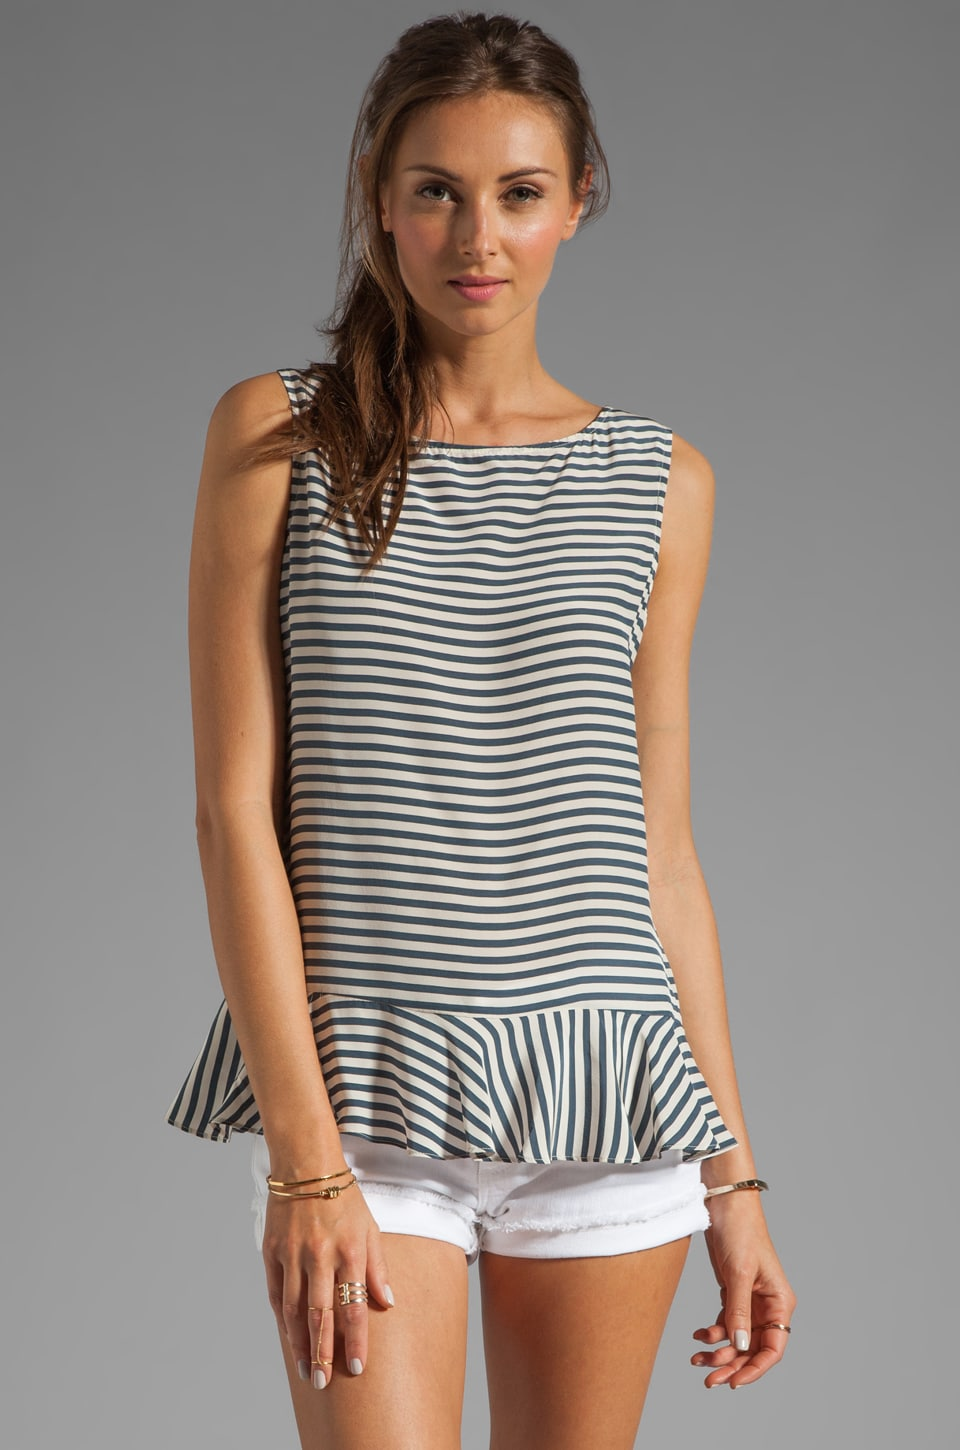 Paper Crown by Lauren Conrad Saybrook Top in Navy/Cream Stripe